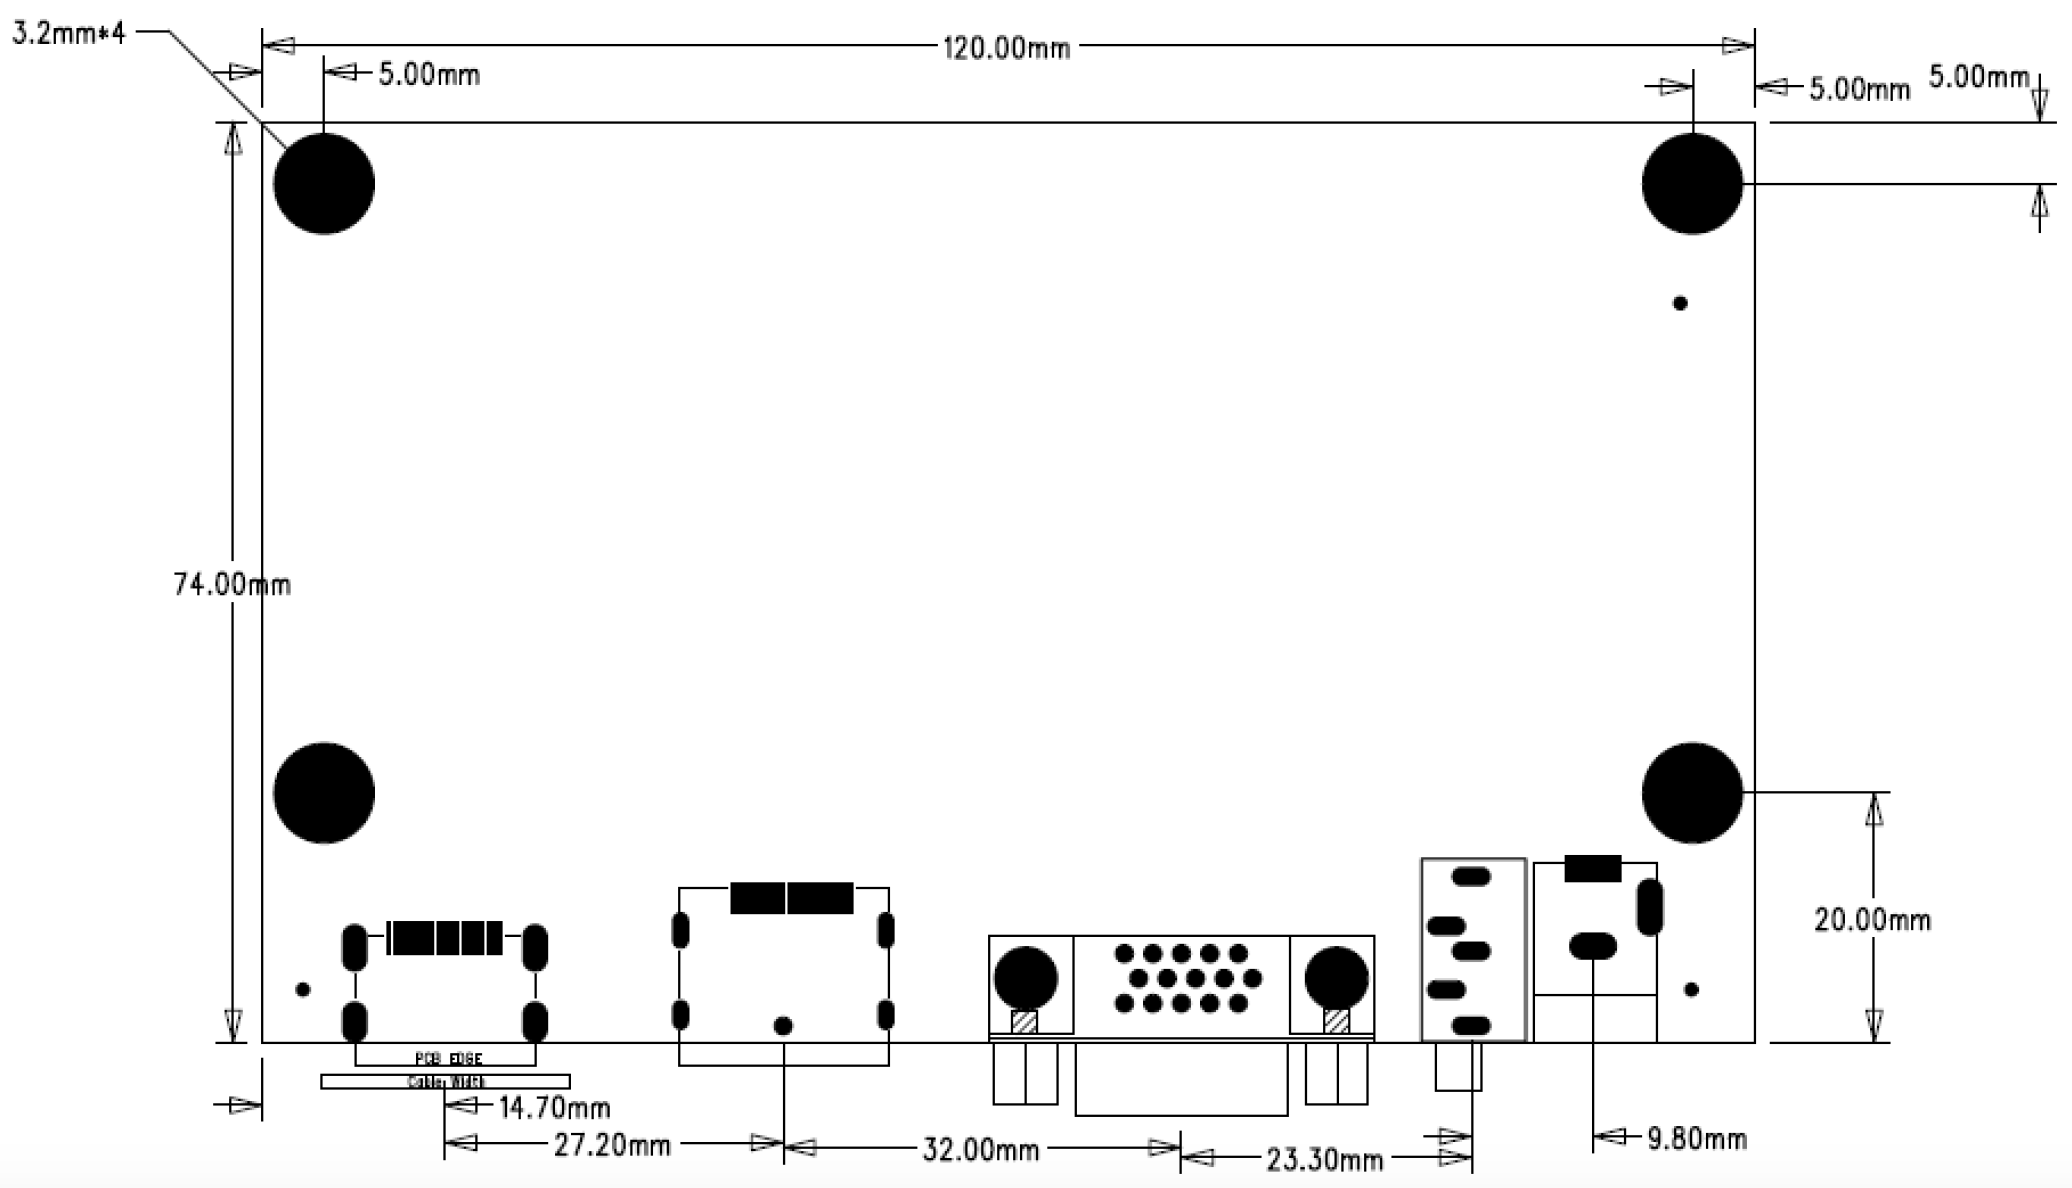 AD-0037D-20 Front view 2D Drawing